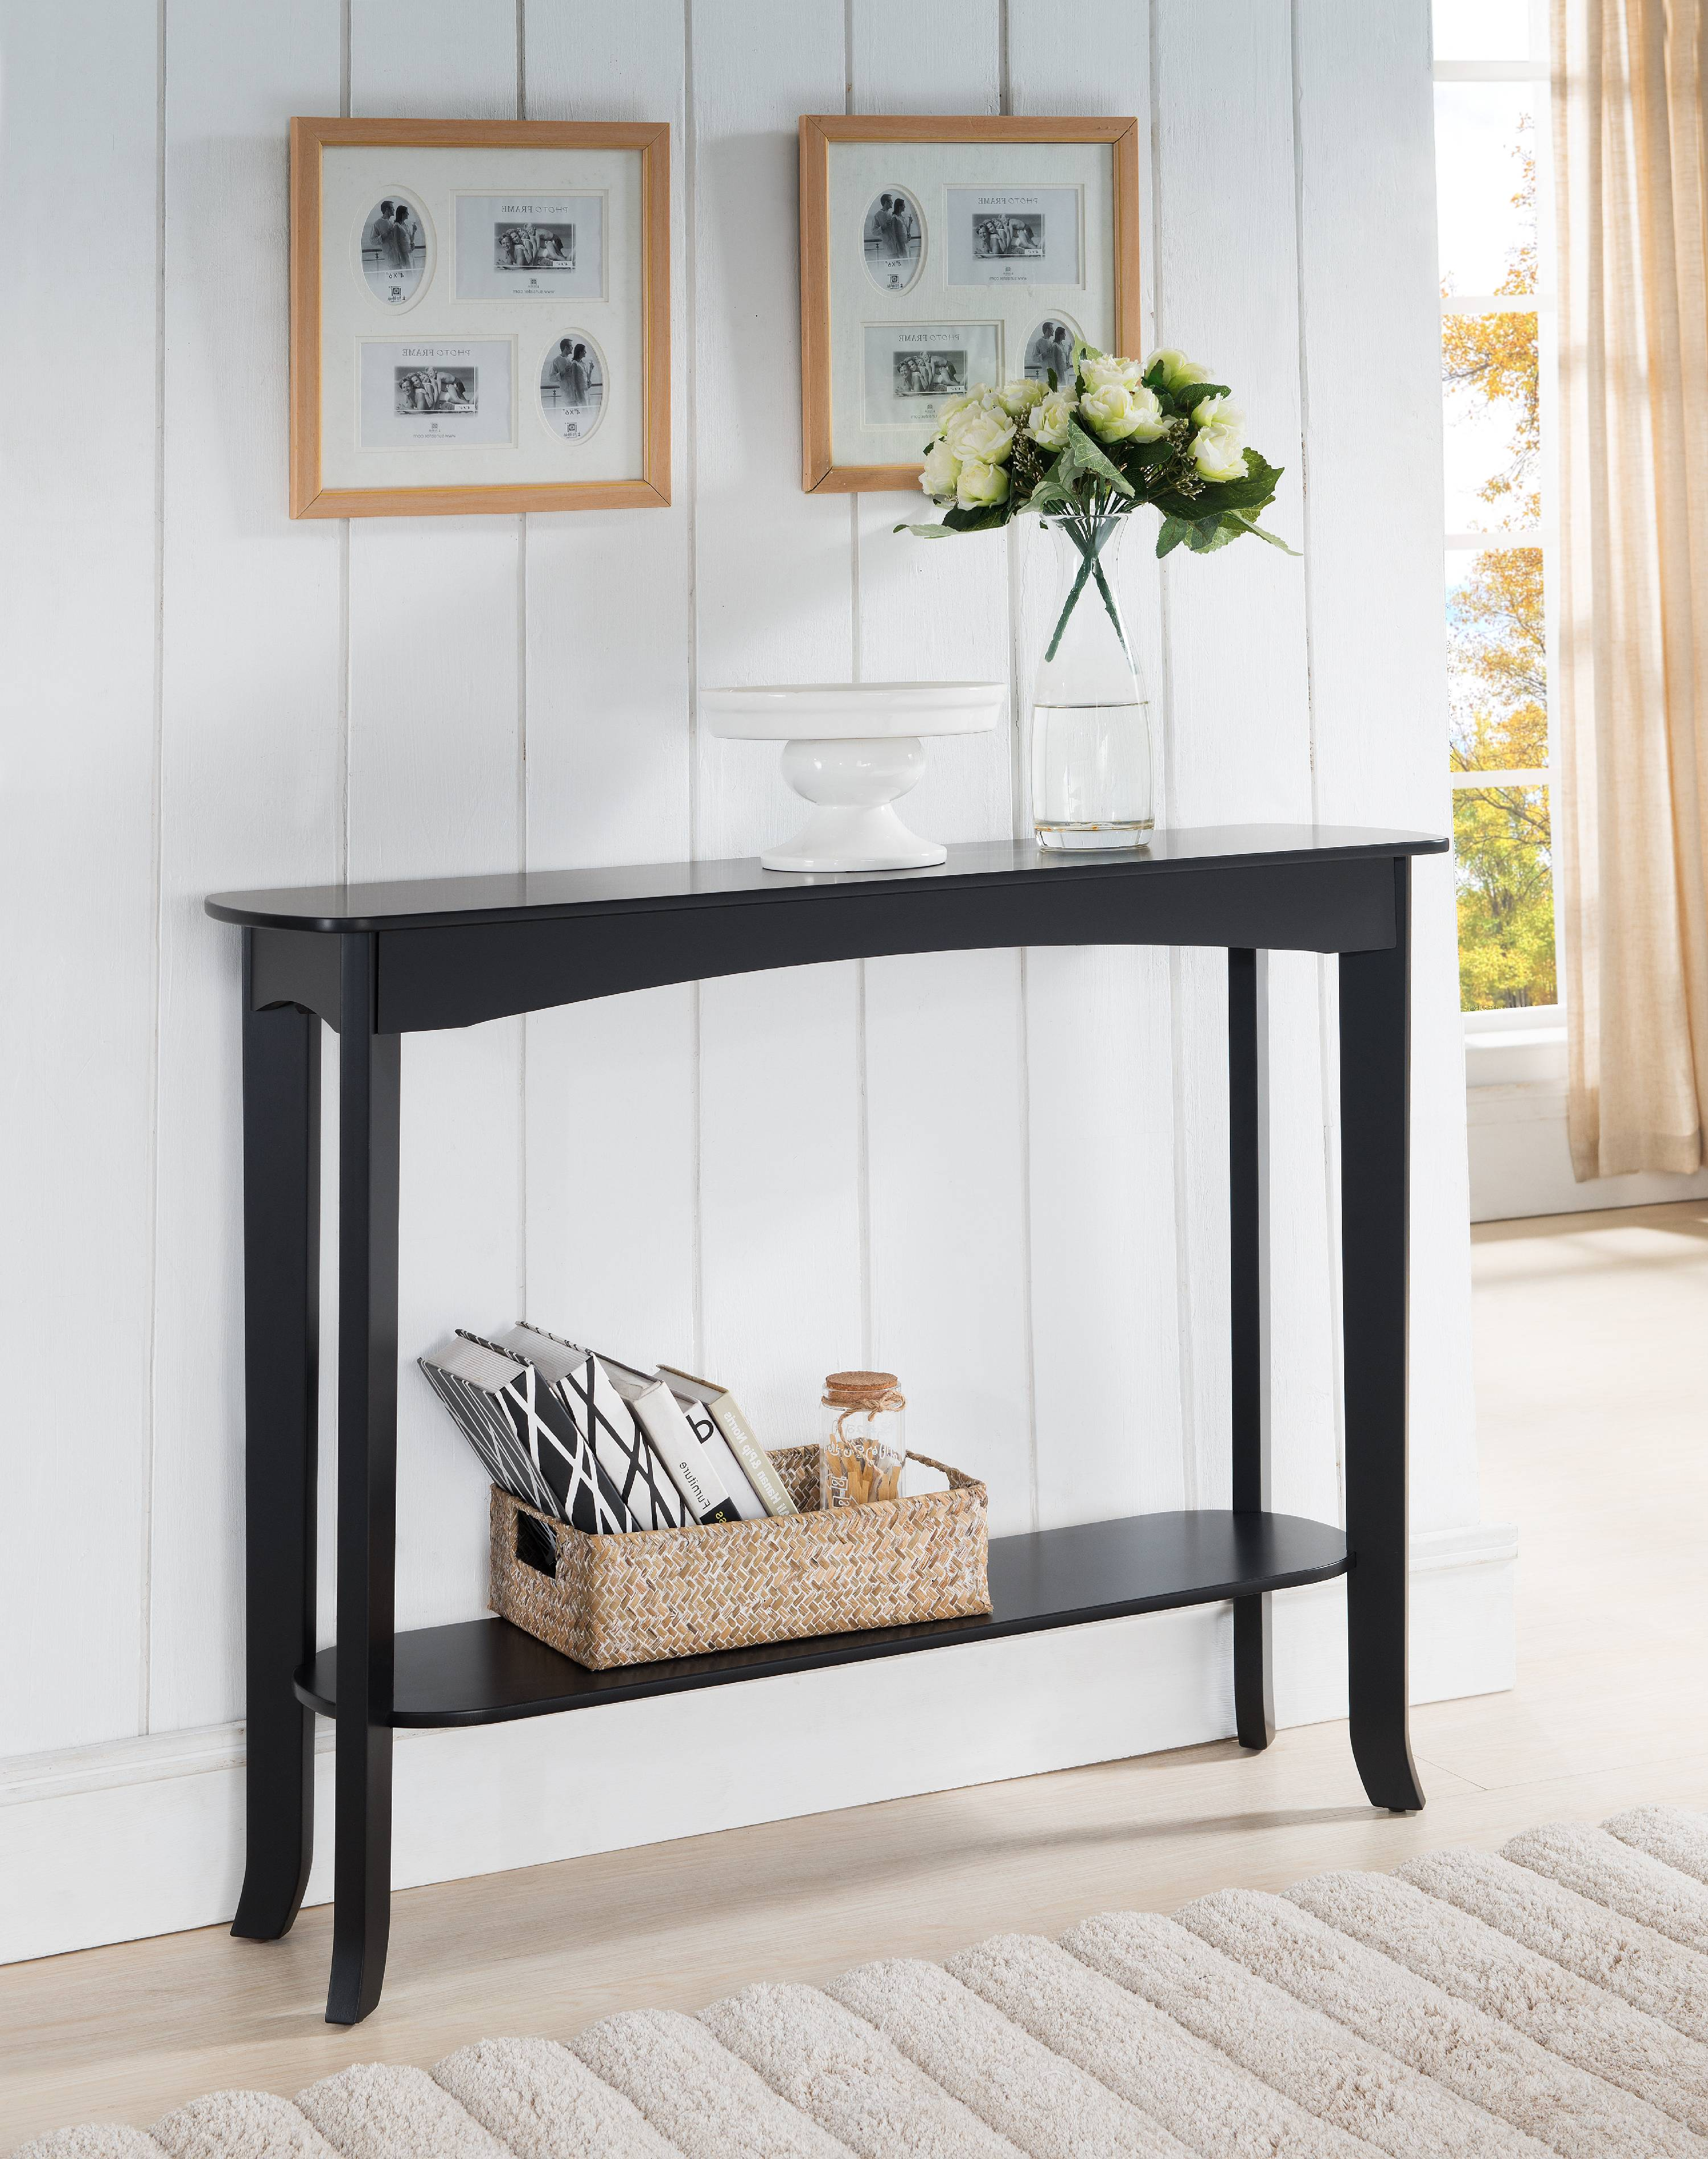 Carter Espresso Wood Contemporary Occasional Entryway Console Sofa Table With Storage Shelf by Pilaster Designs